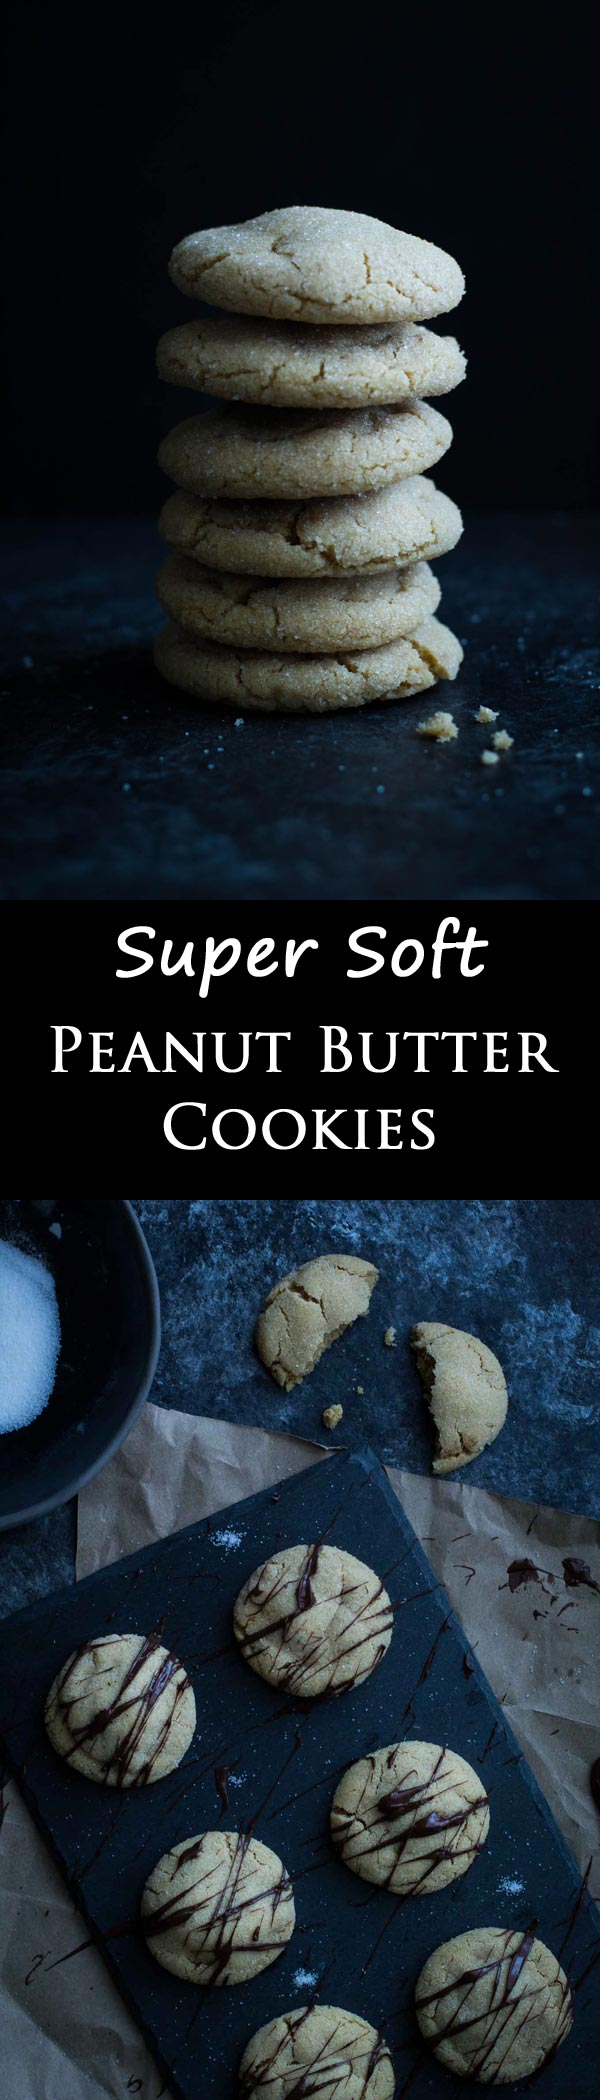 Soft Peanut Butter Cookies - a recipe perfect for baking at home! Roll them in sugar and dip them in chocolate for a special treat!